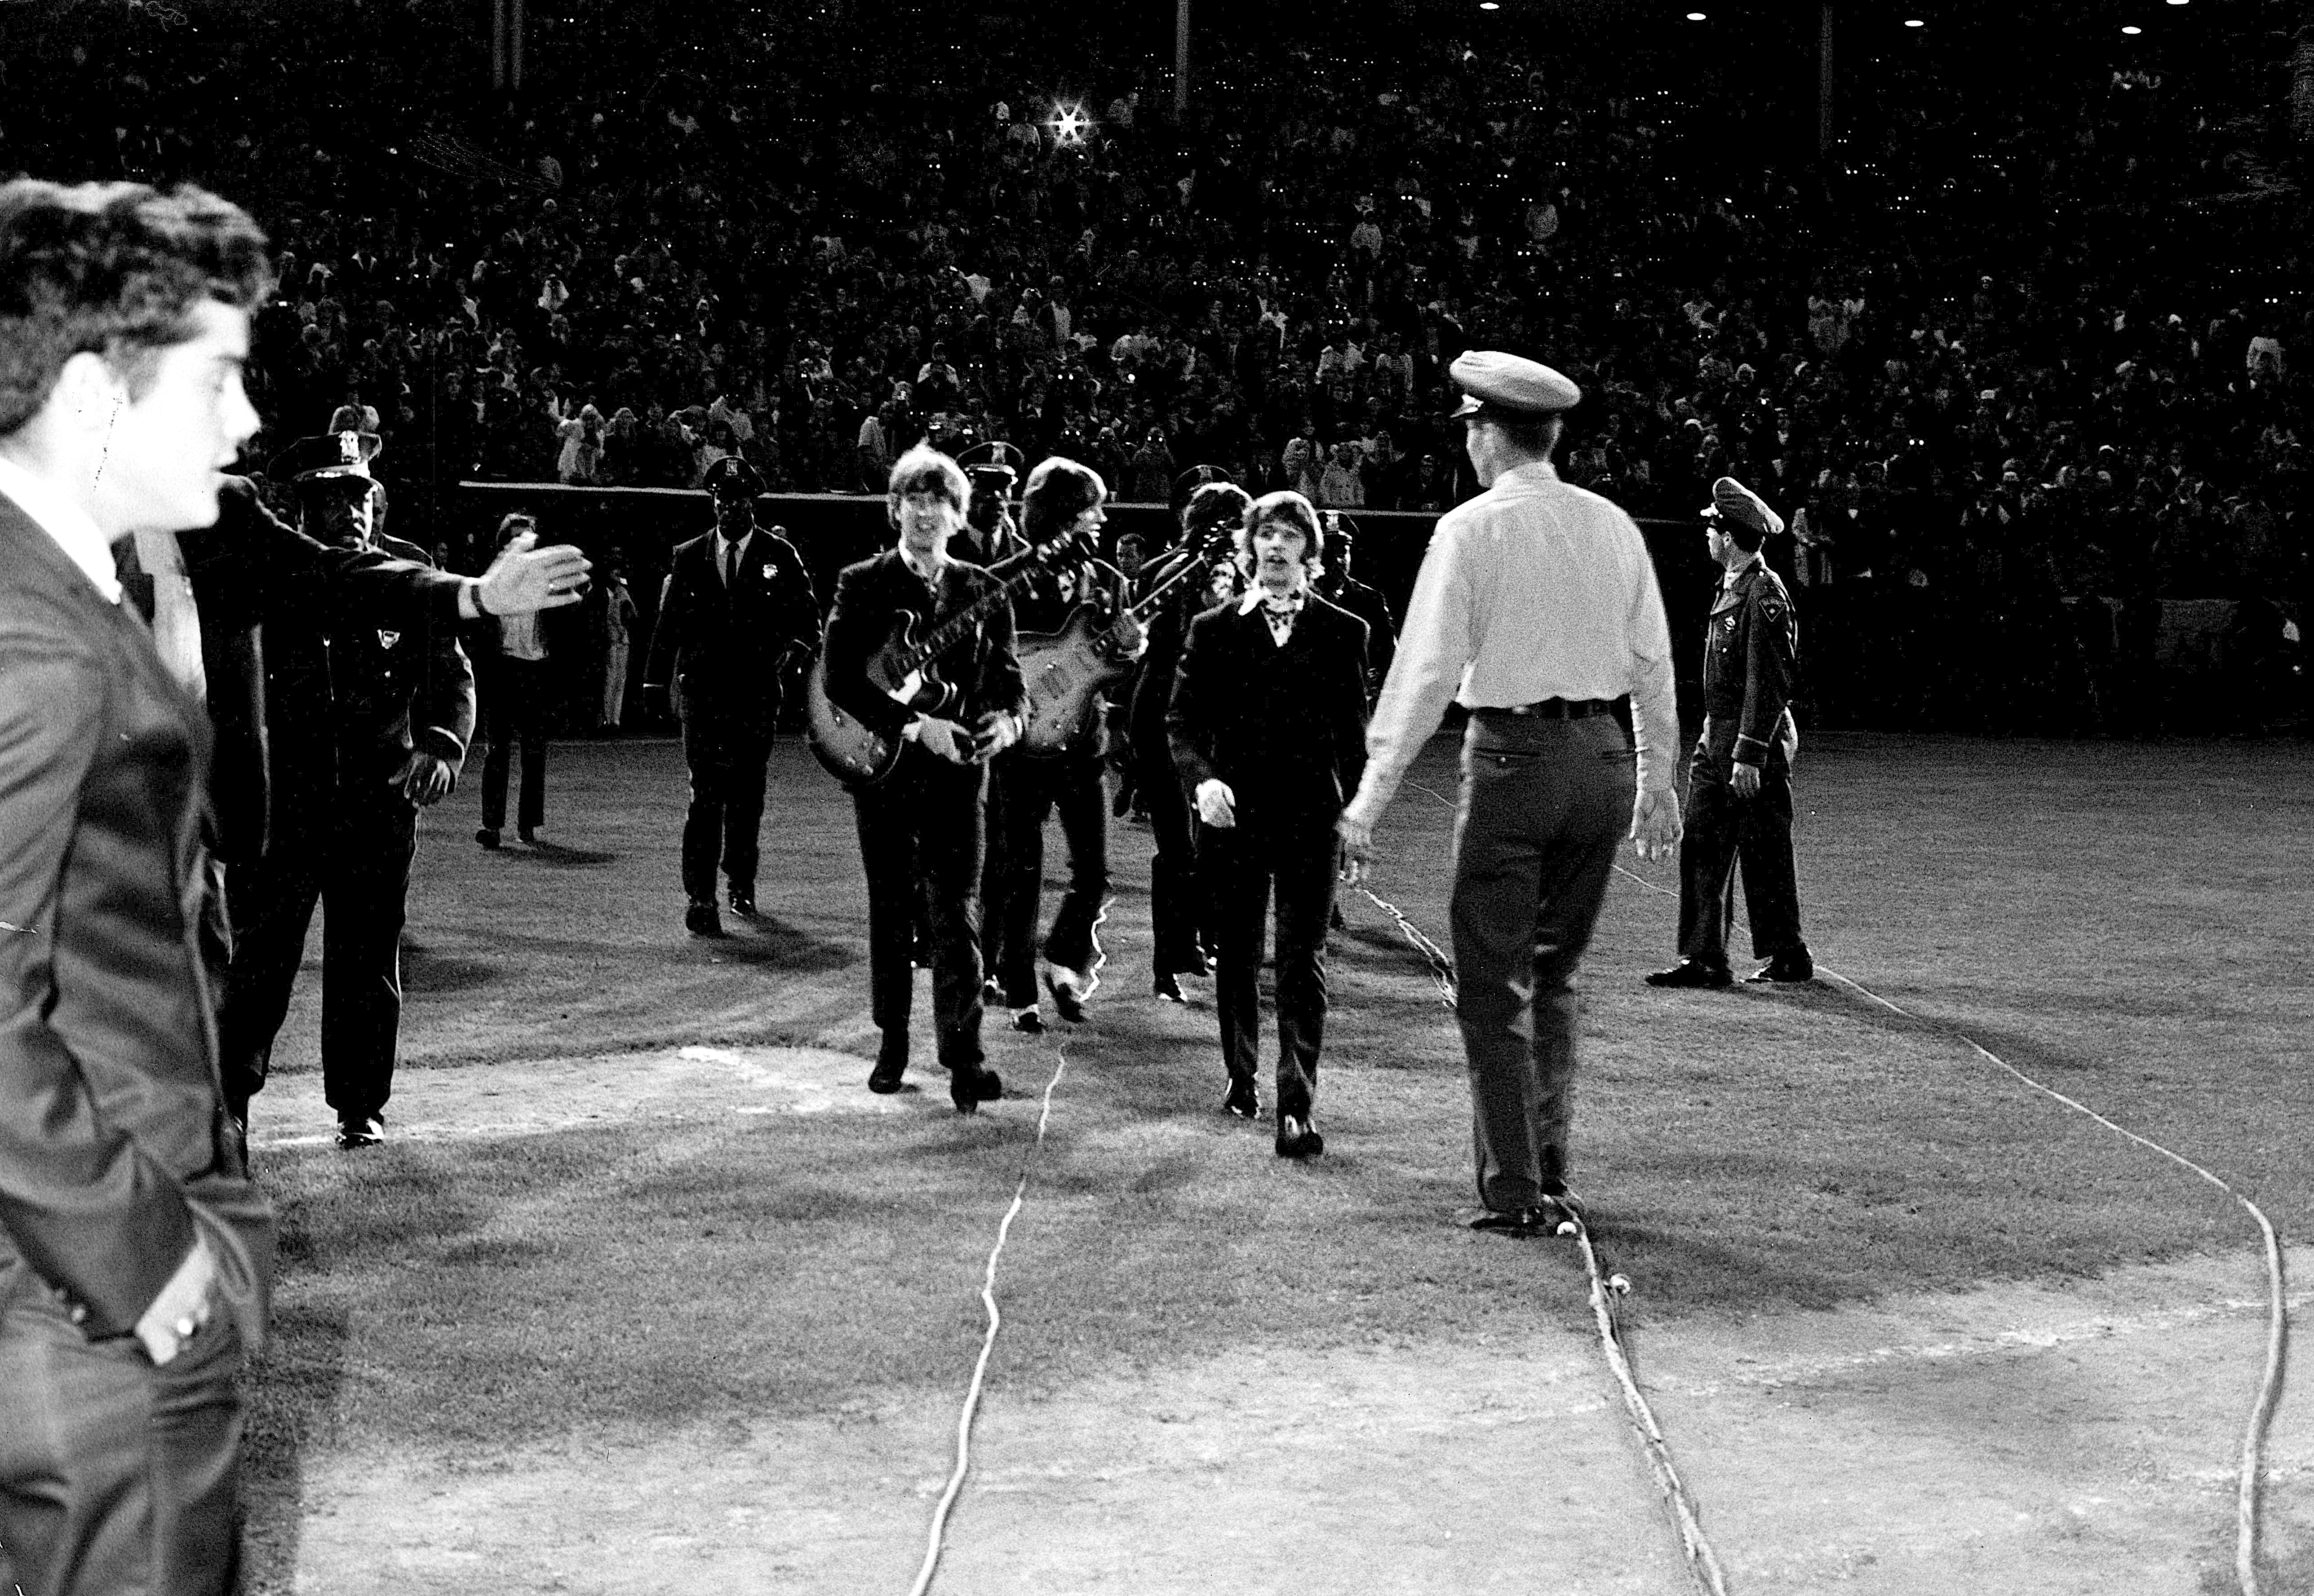 e2430b8e61a The Beatles walking to the stage for the last show of their final tour at  Candlestick